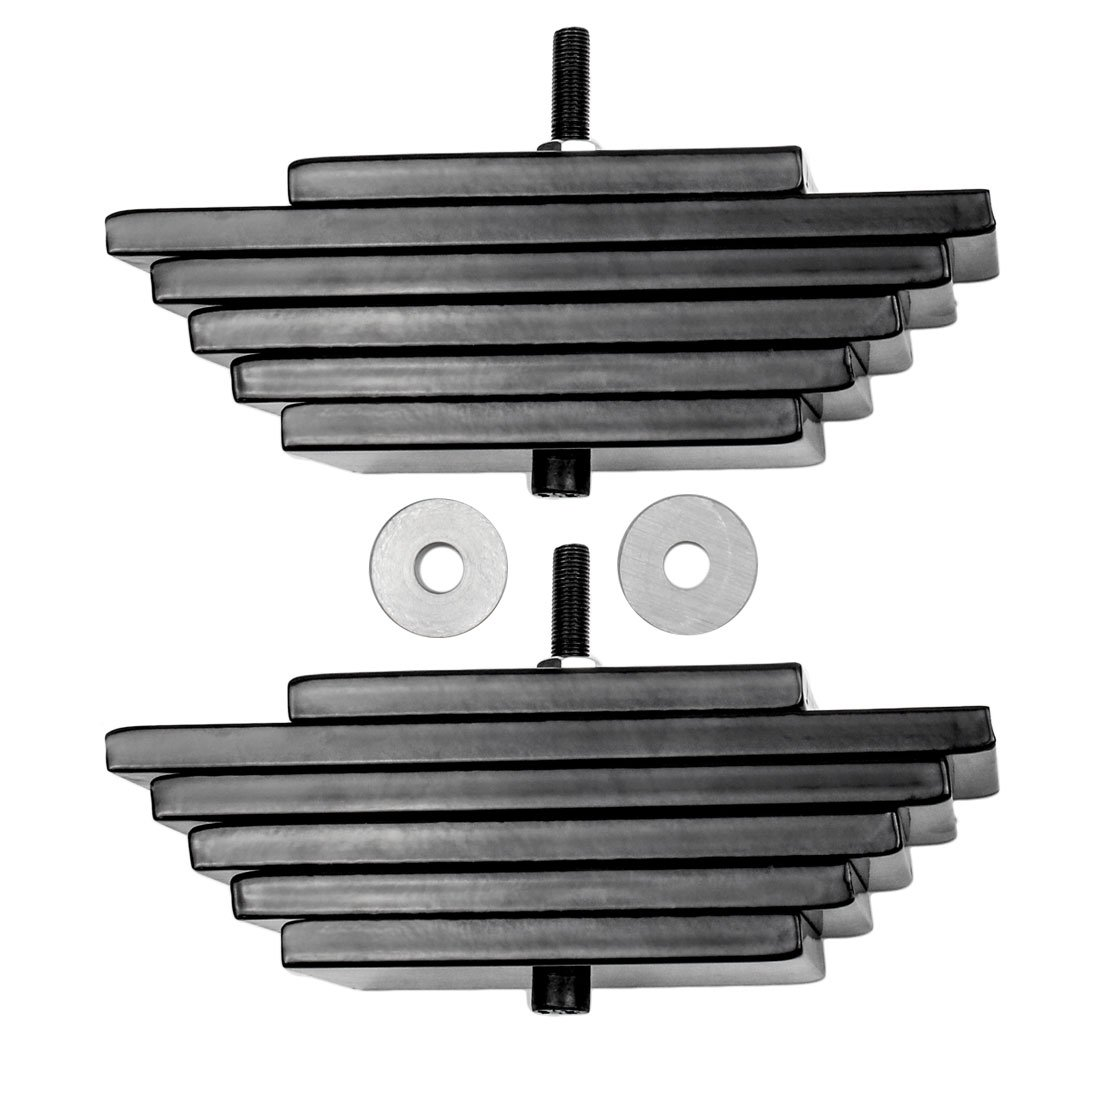 1999-2004 Ford F250 F350 SuperDuty 4WD 3 Front Leveling Lift Kit